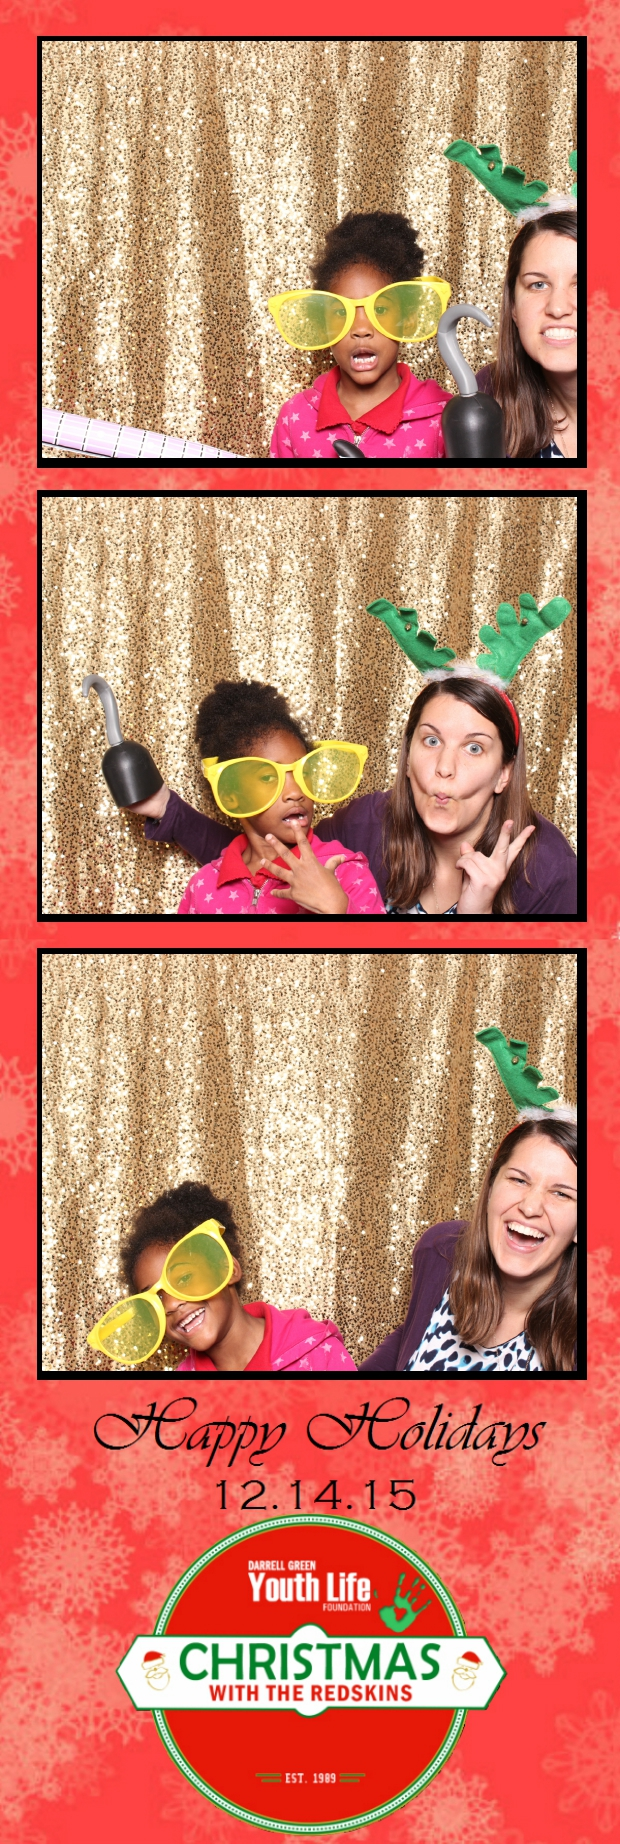 Guest House Events Photo Booth DGYLF Strips (45).jpg